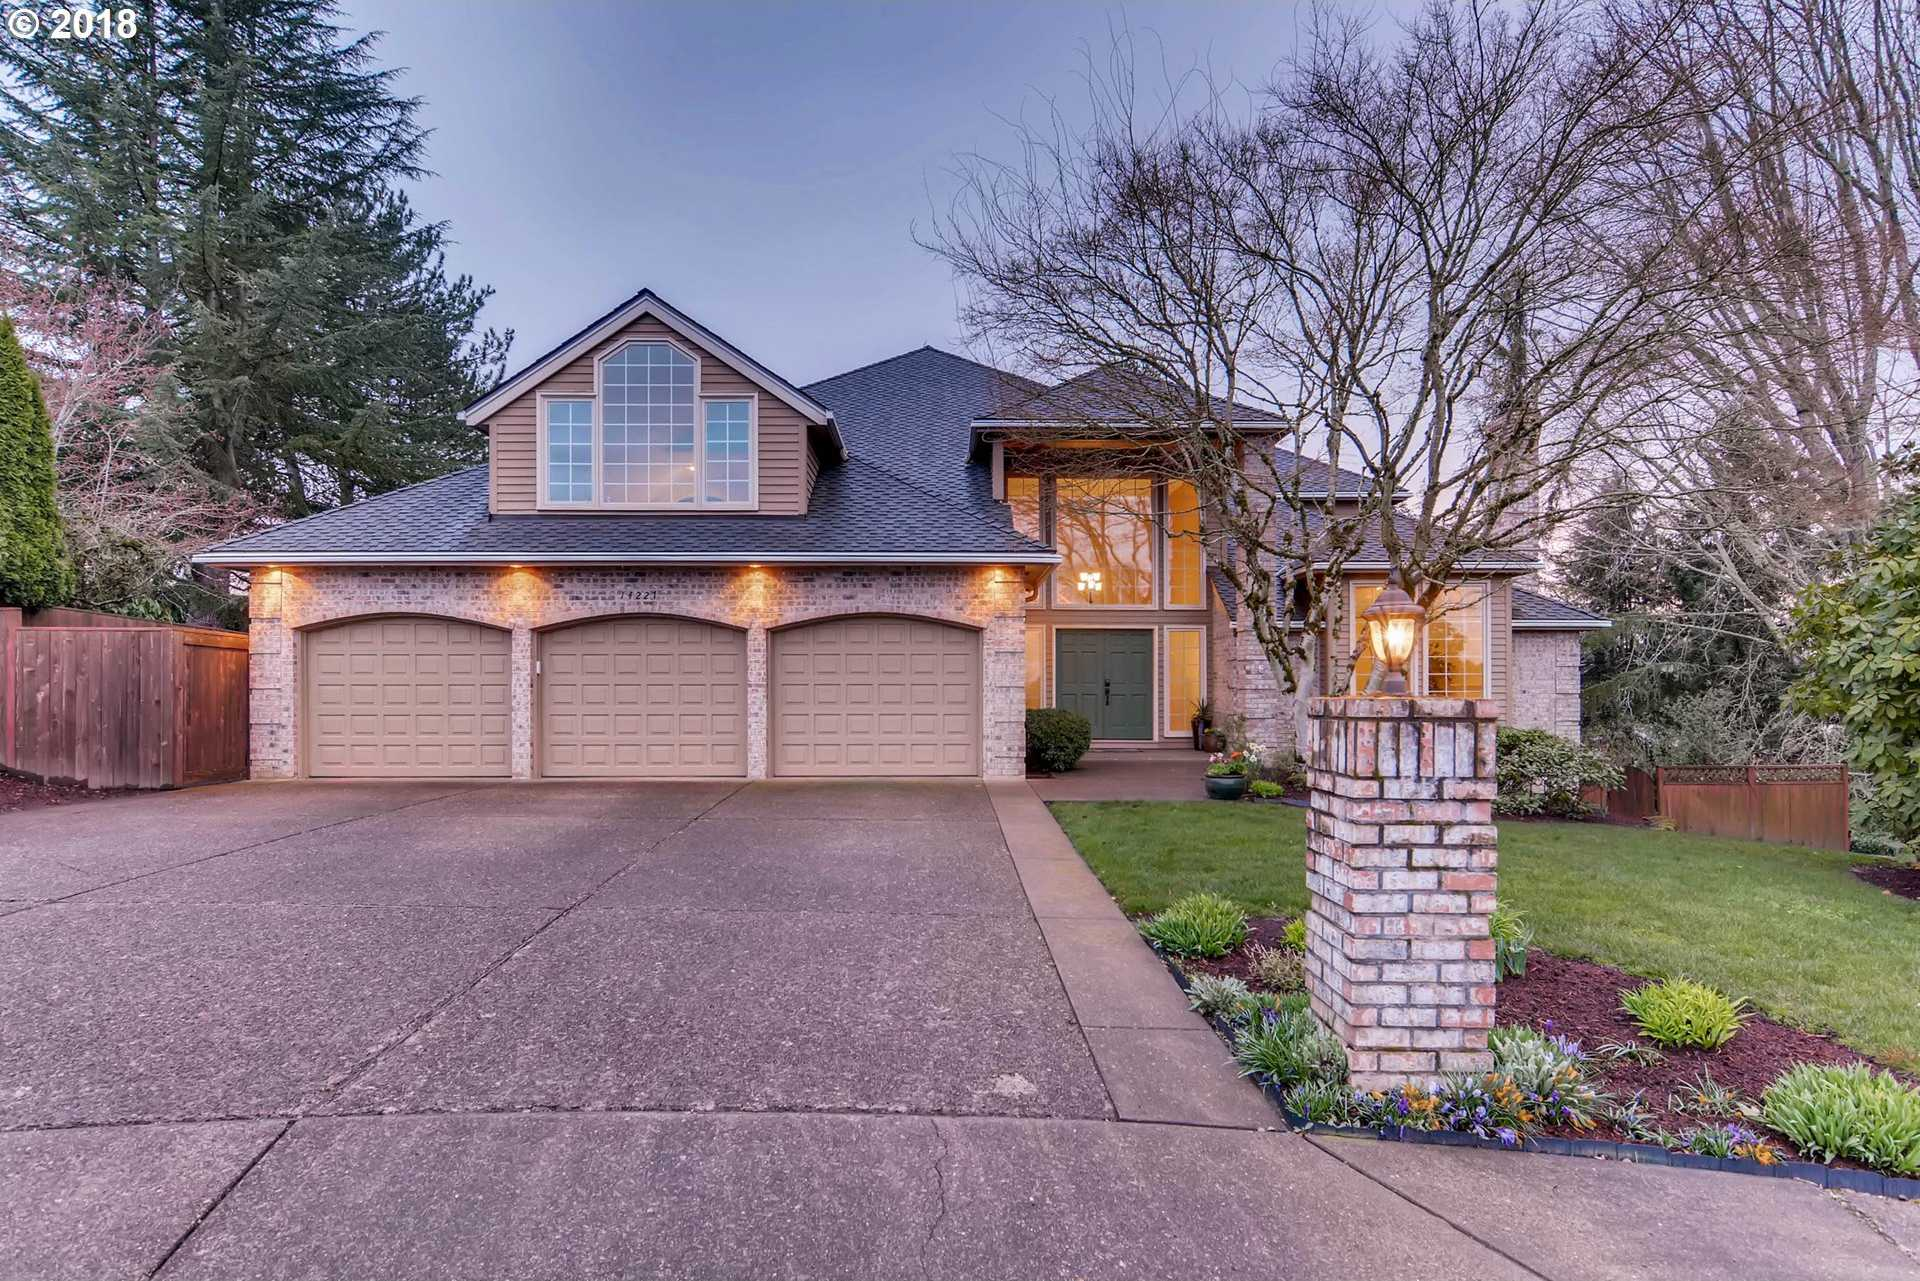 $750,000 - 5Br/3Ba -  for Sale in Shadow Hills, Bull Mountain, Tigard